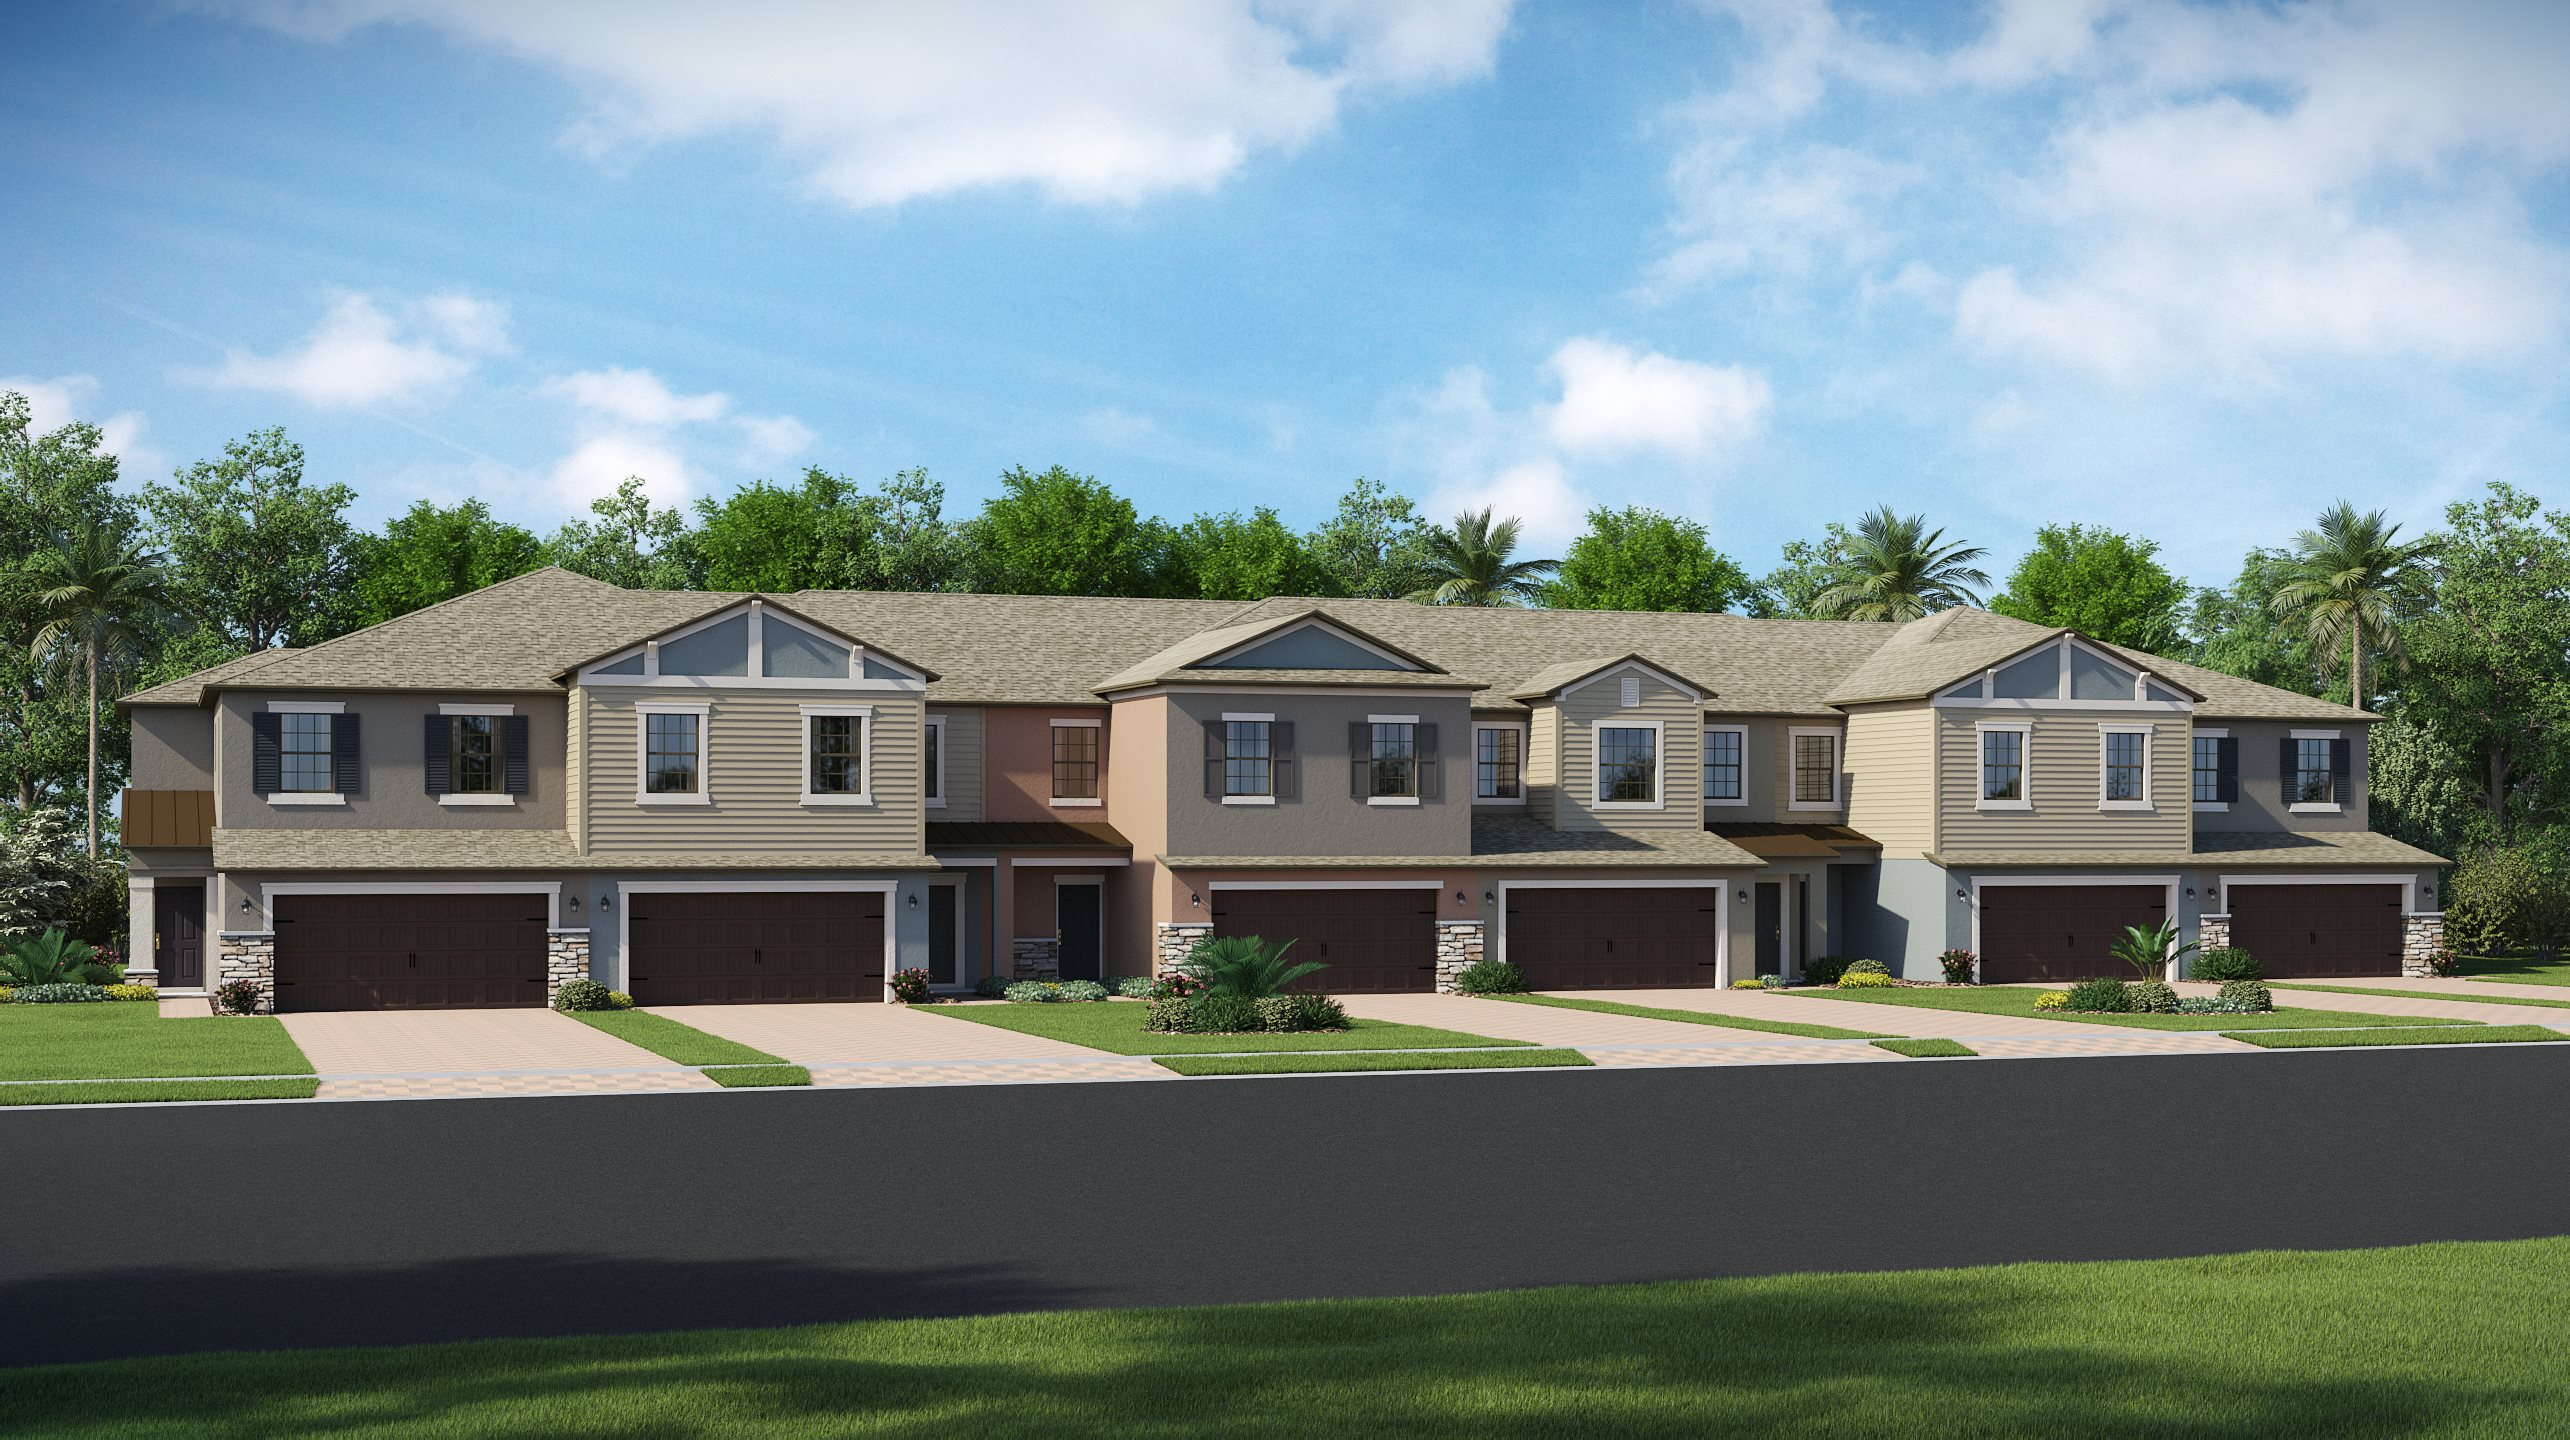 Willow - Townhomes - Verona Exterior A